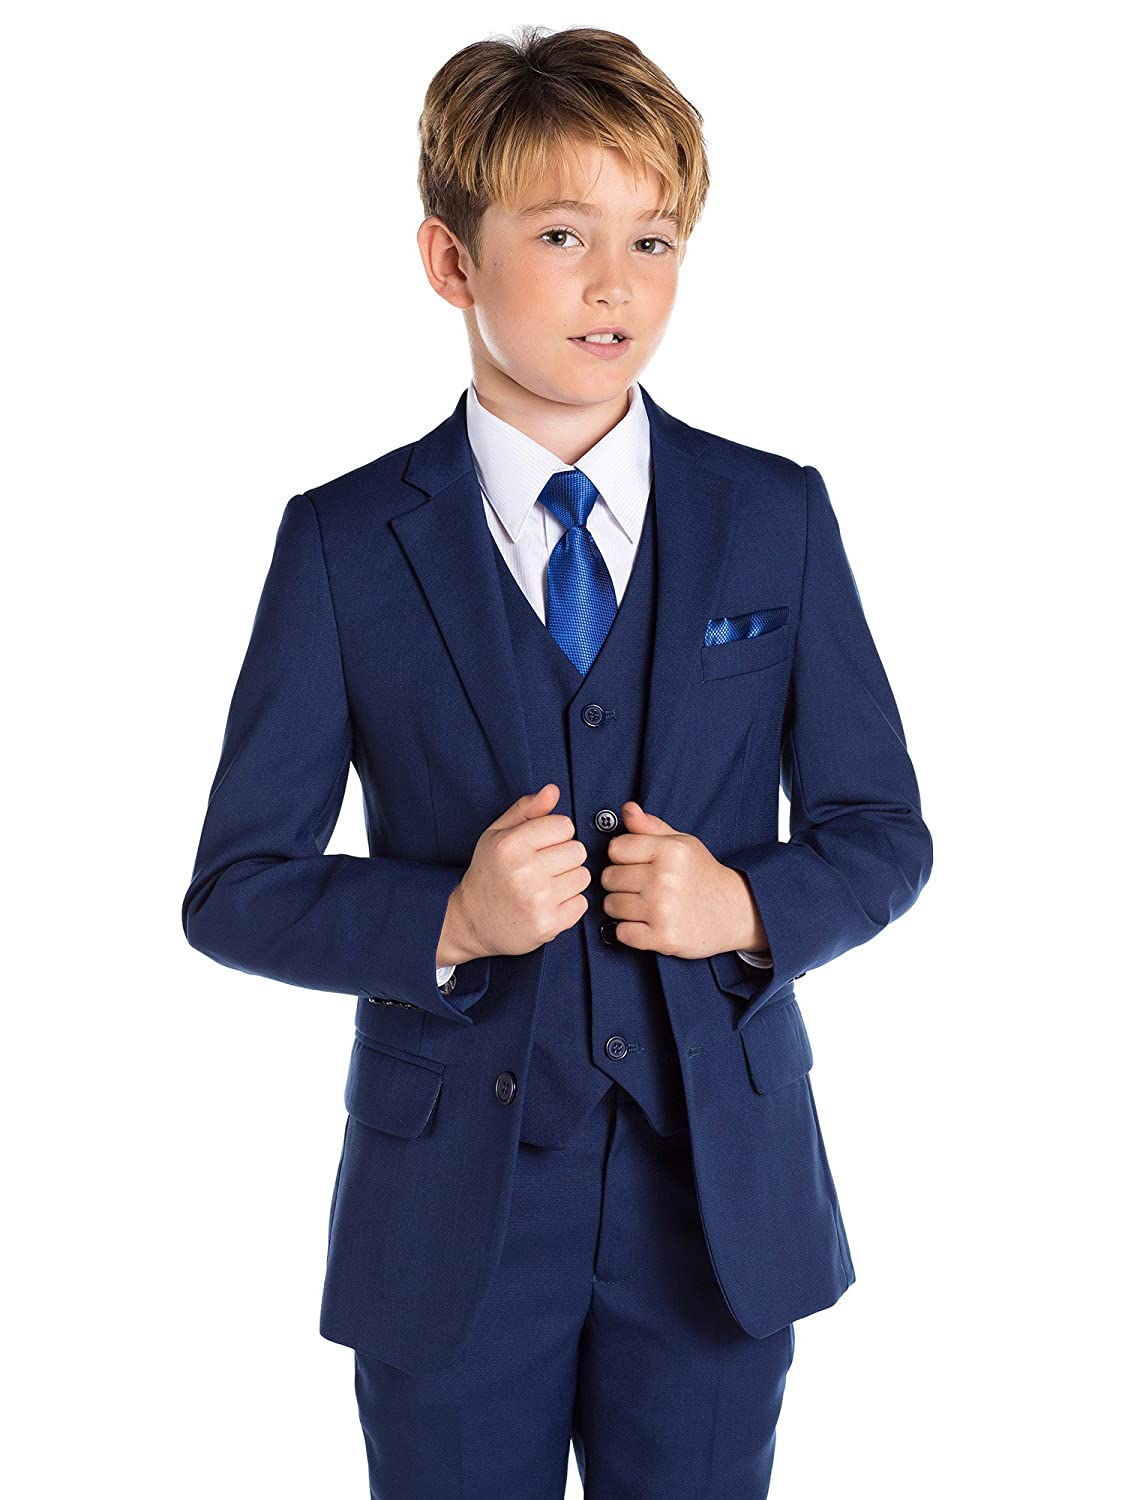 12-18 Months Boys Blue Suit Paisley of London Prom Suits 14 Years Page Boy Suits